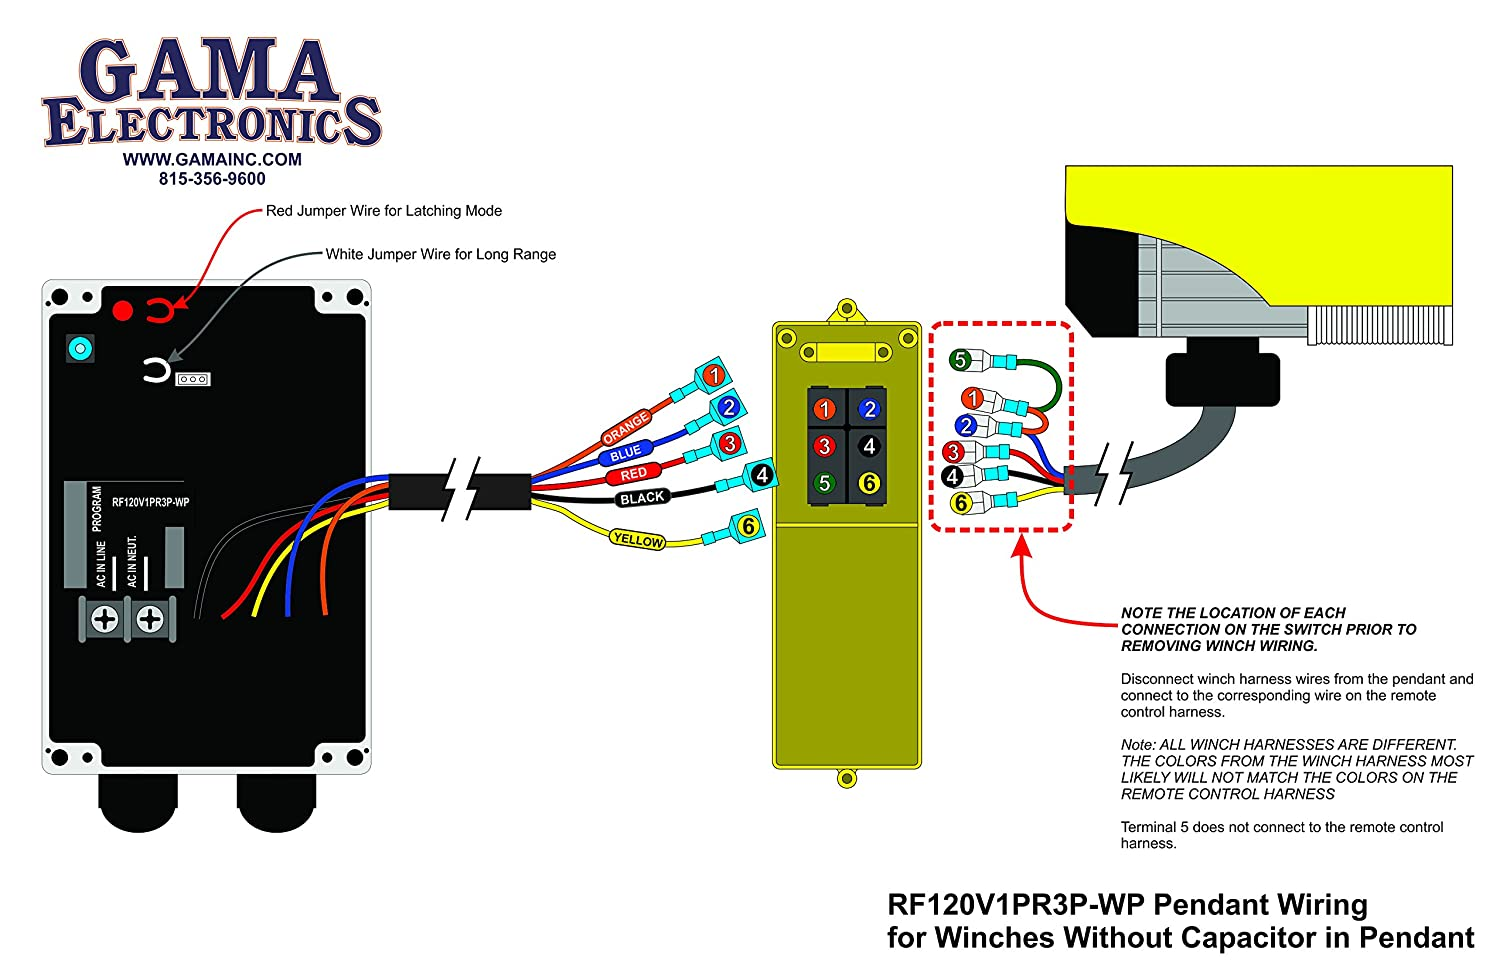 Harbor Freight Electric Hoist Wiring Diagram | Wiring Liry on harbor freight winch system, harbor freight winch cover, harbor freight winch solenoid, harbor freight winch remote control, badland remote winch diagram, harbor freight winch accessories, harbor freight winch battery, badland winches wiring diagram, harbor freight winch parts, harbor freight winch circuit breaker,